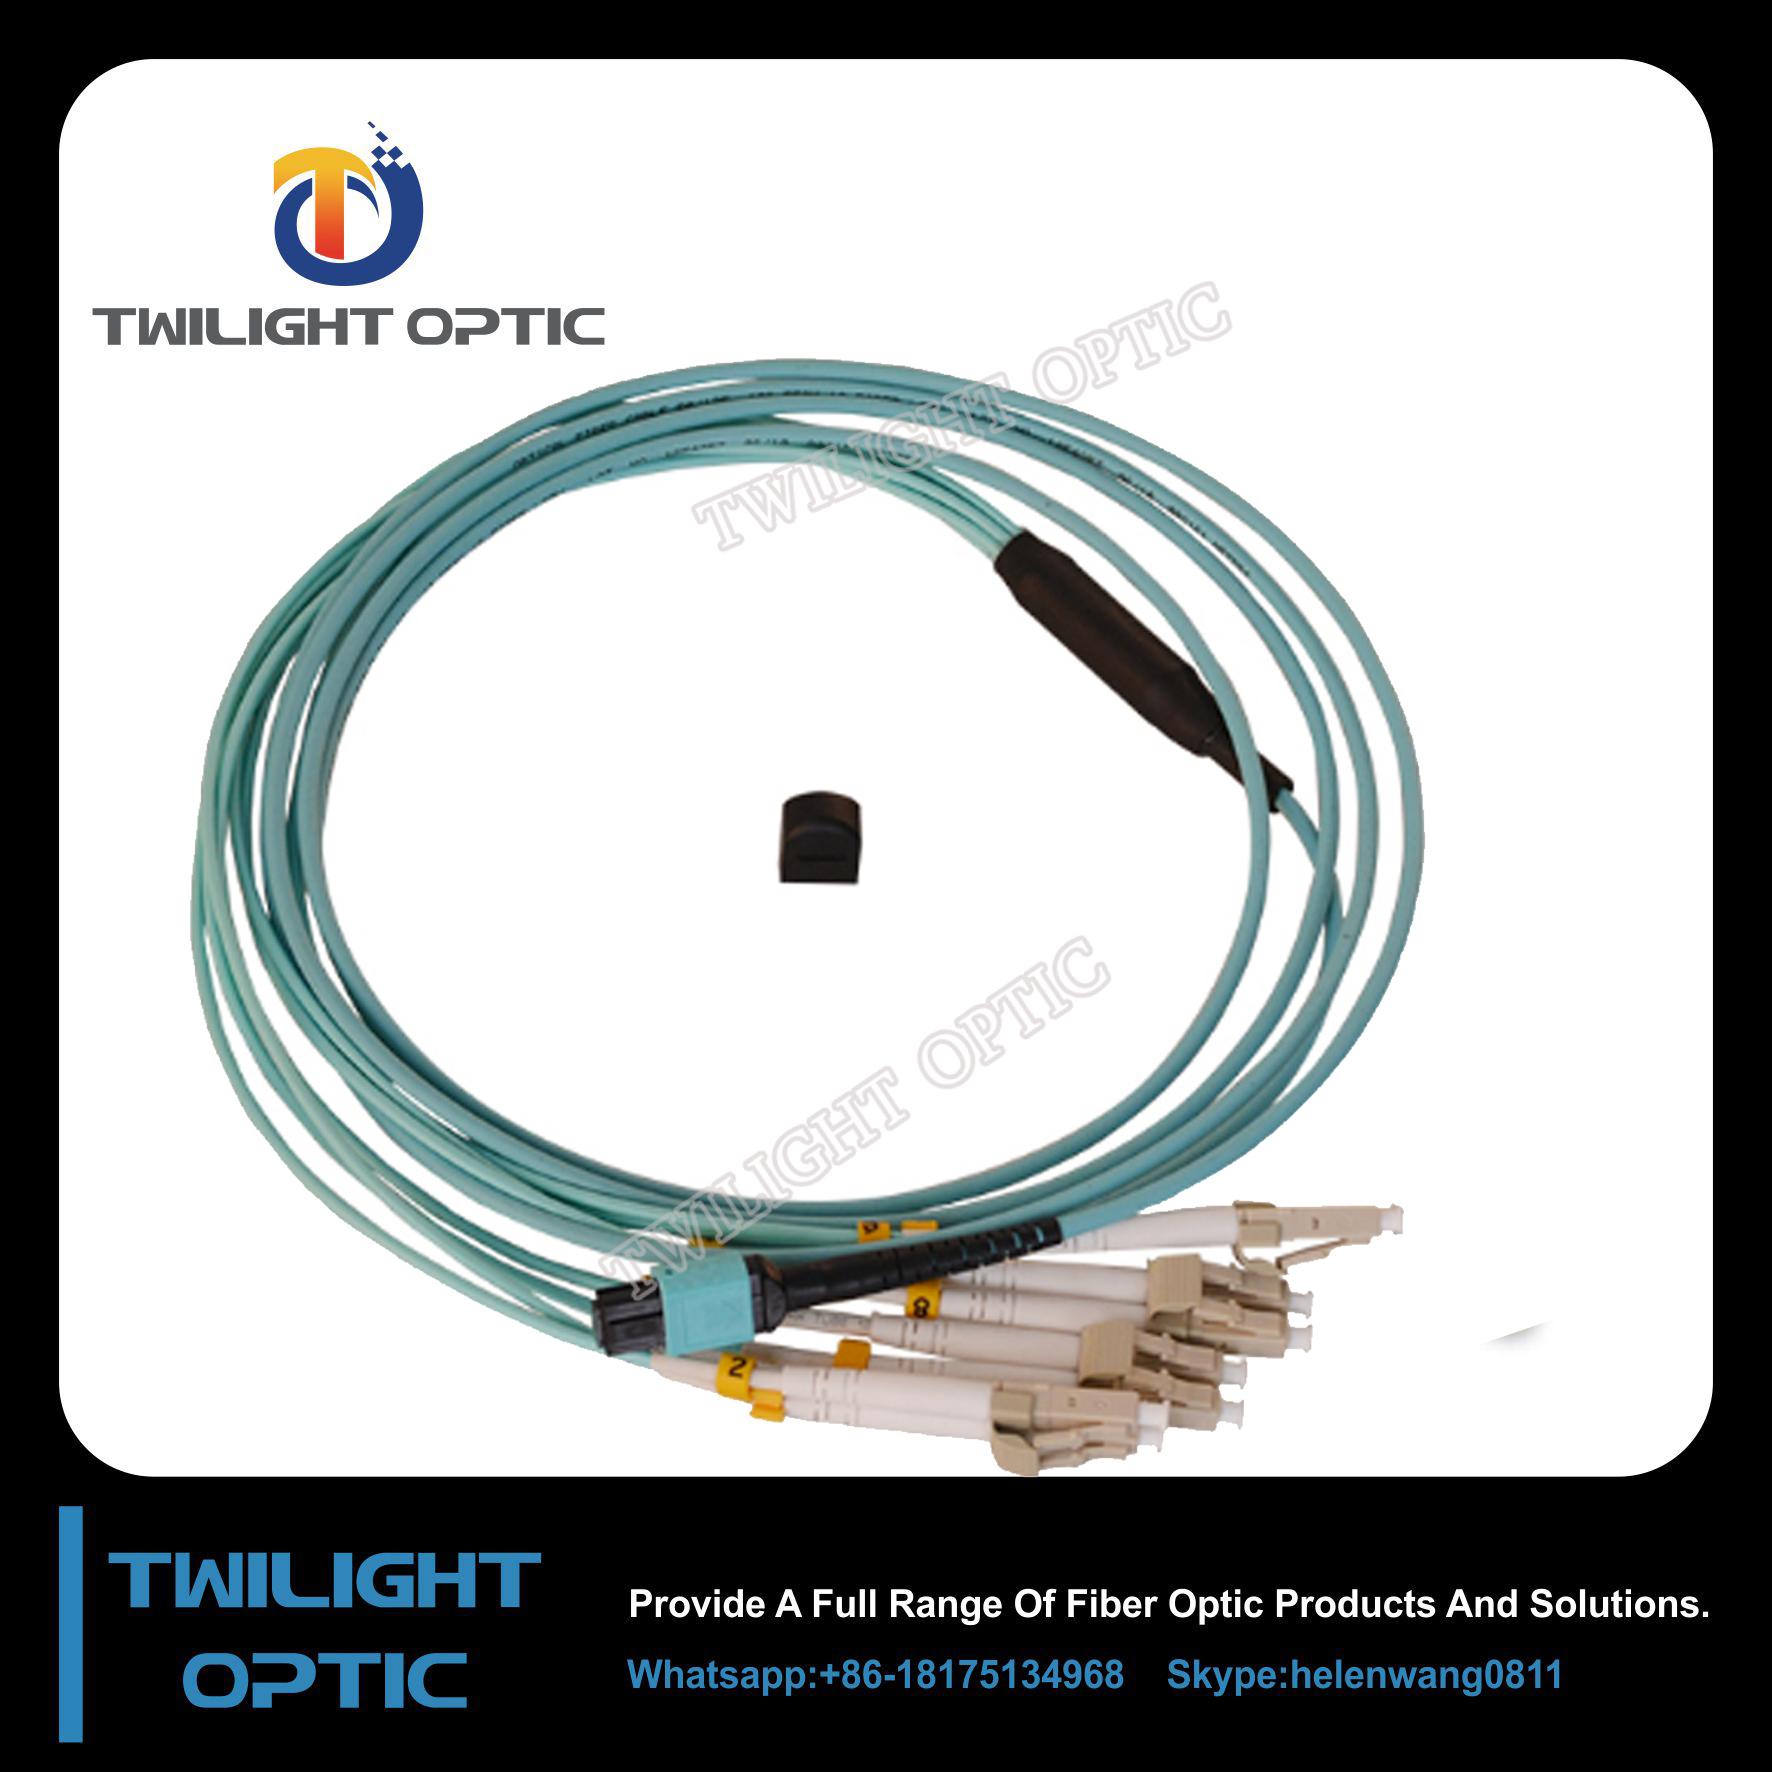 20m Mtp Mpo Patch Cord Suppliers And Plenum Fiber Optic Cable 40 Gigabit Ethernet Qsfp 40gbasesr4 To Manufacturers At